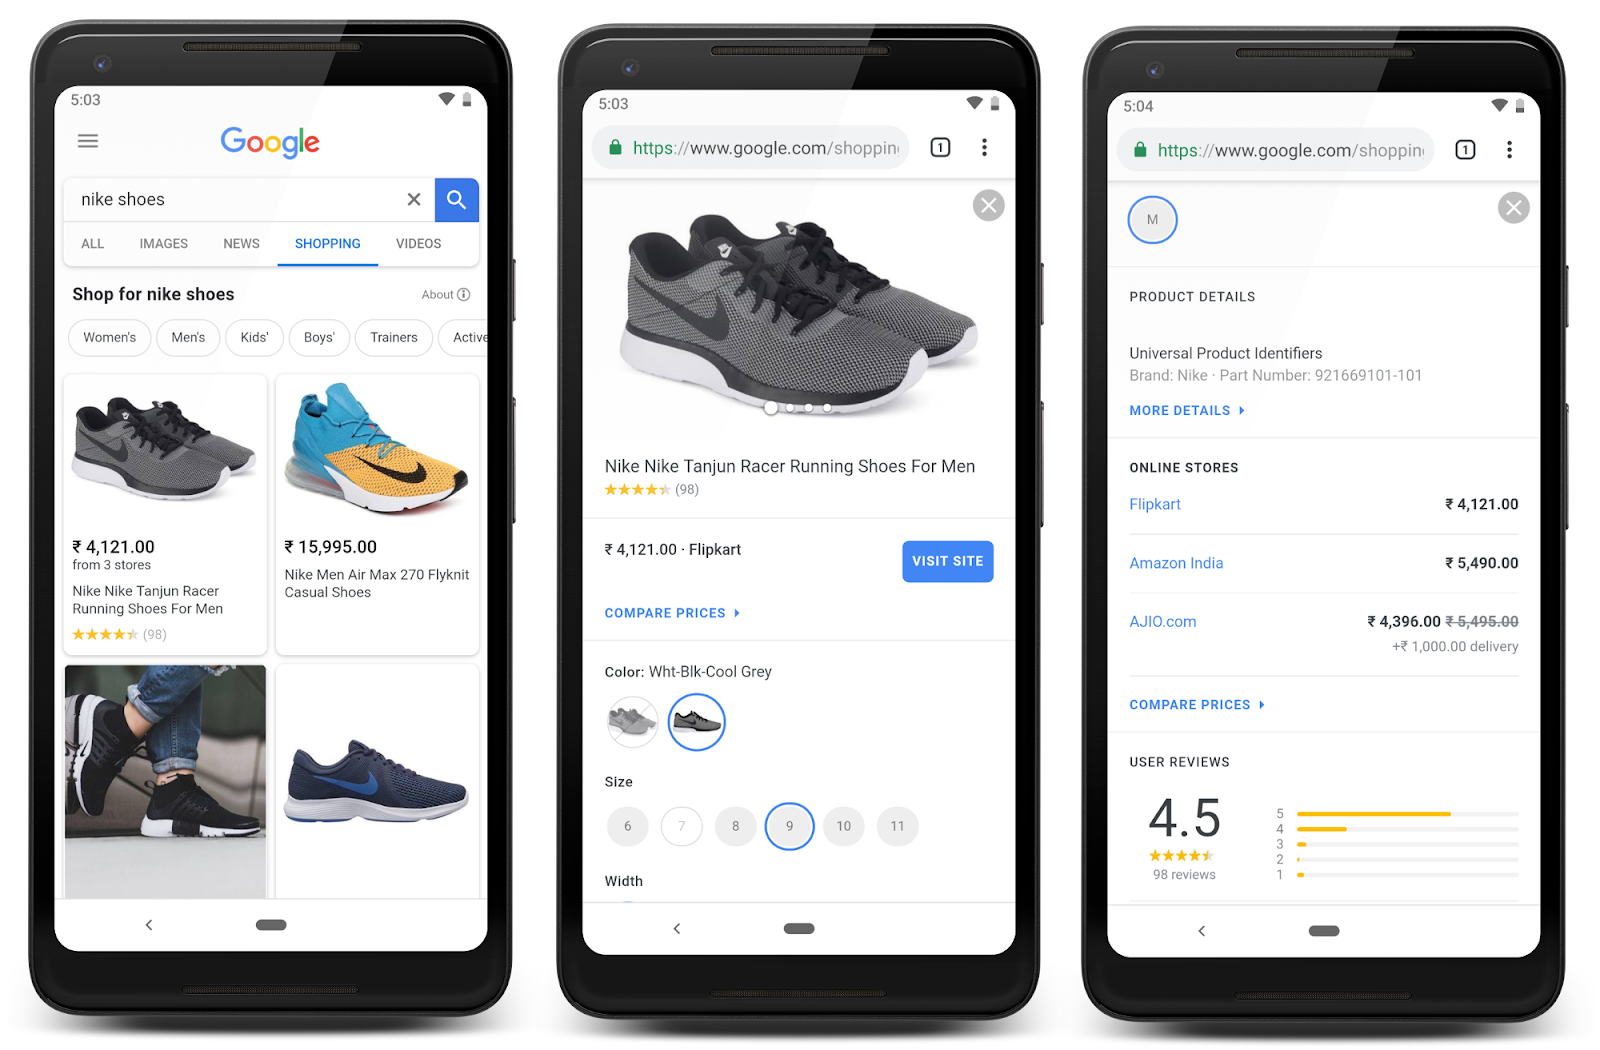 Google-Mobile-Shopping-Alter-EgoShoes